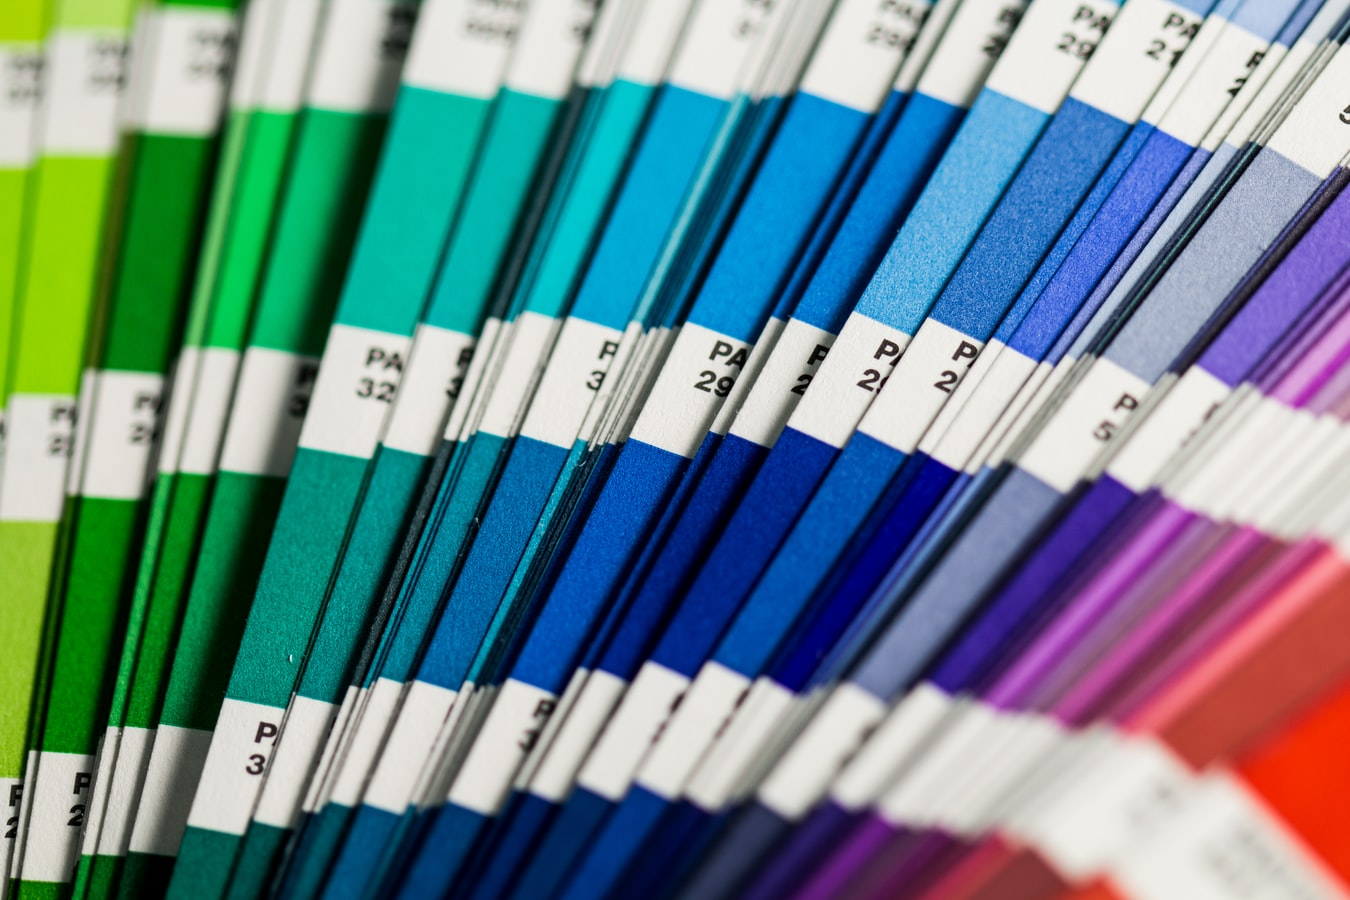 Uncoated Pantone swatches